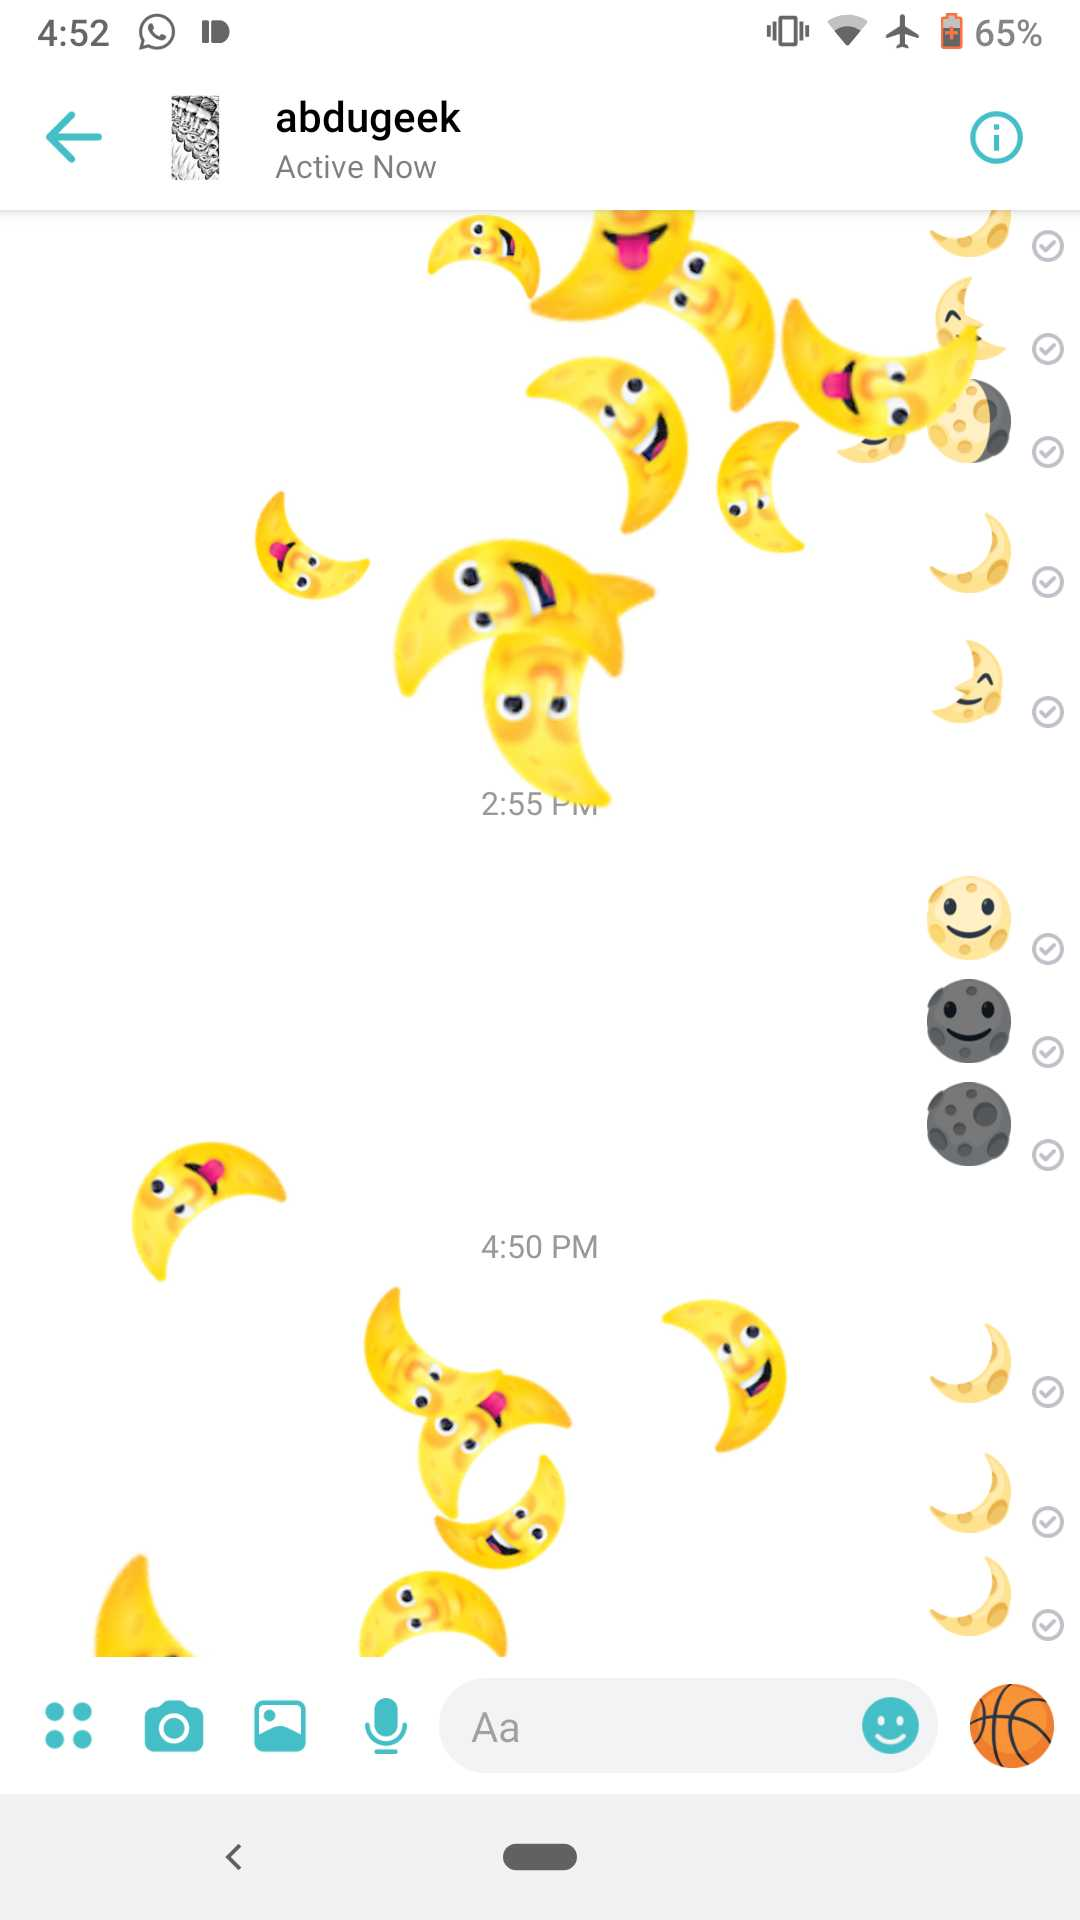 A screenshot of facebook messenger chat with crescents showering